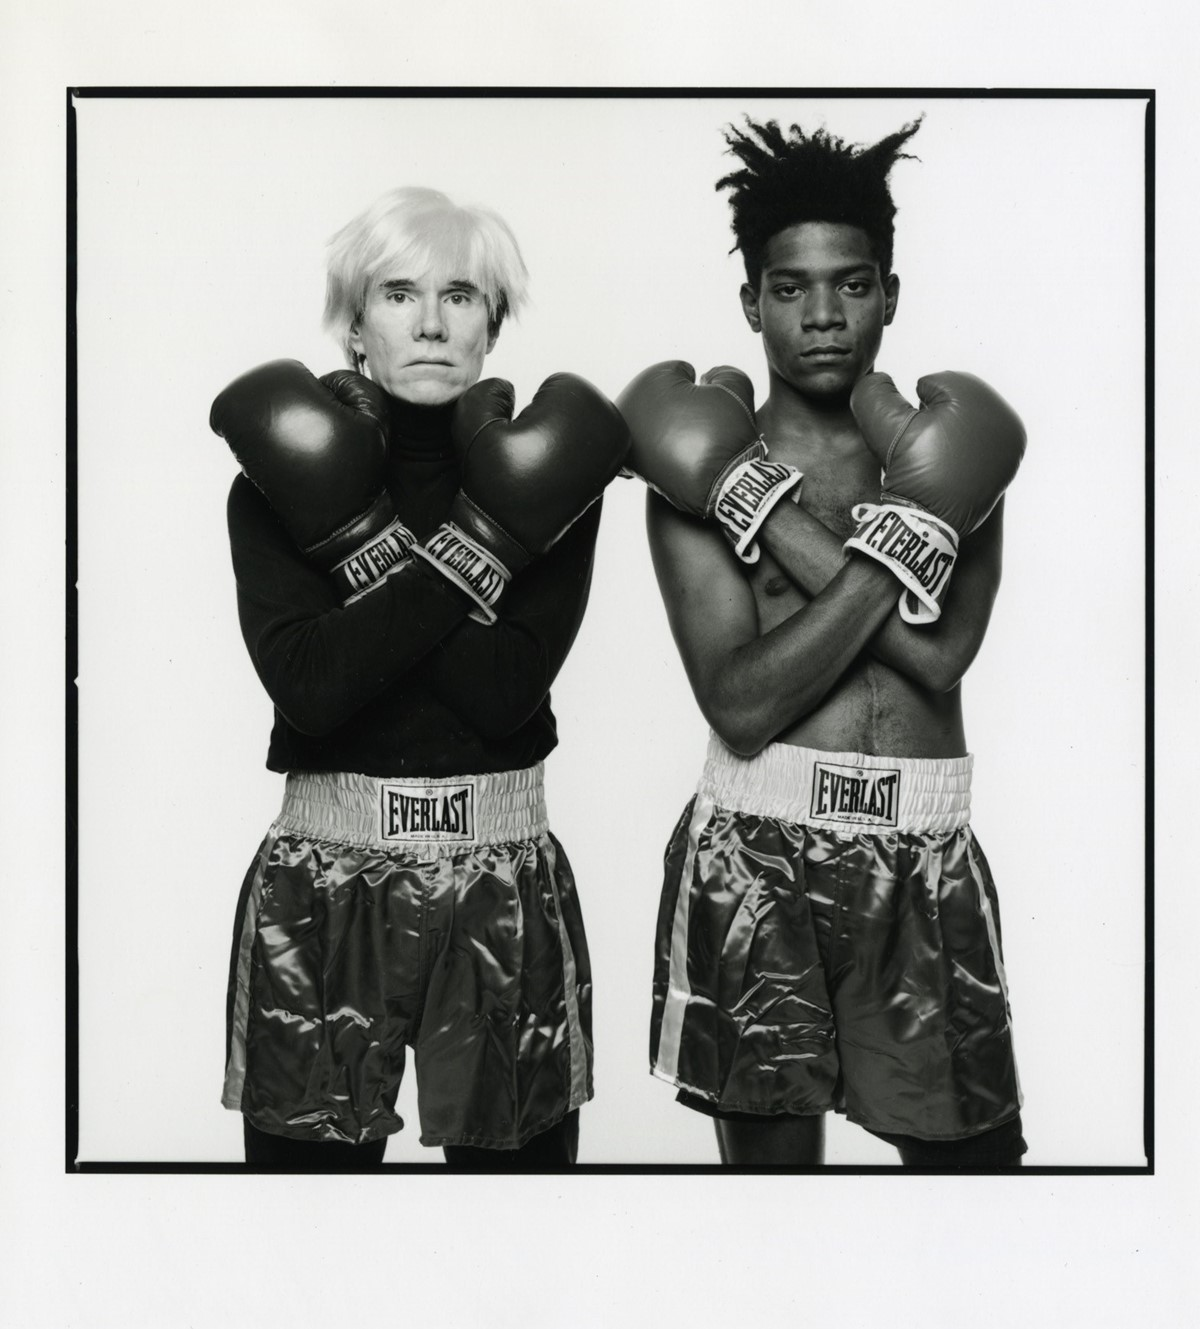 In Pictures: Andy Warhol and His Factory